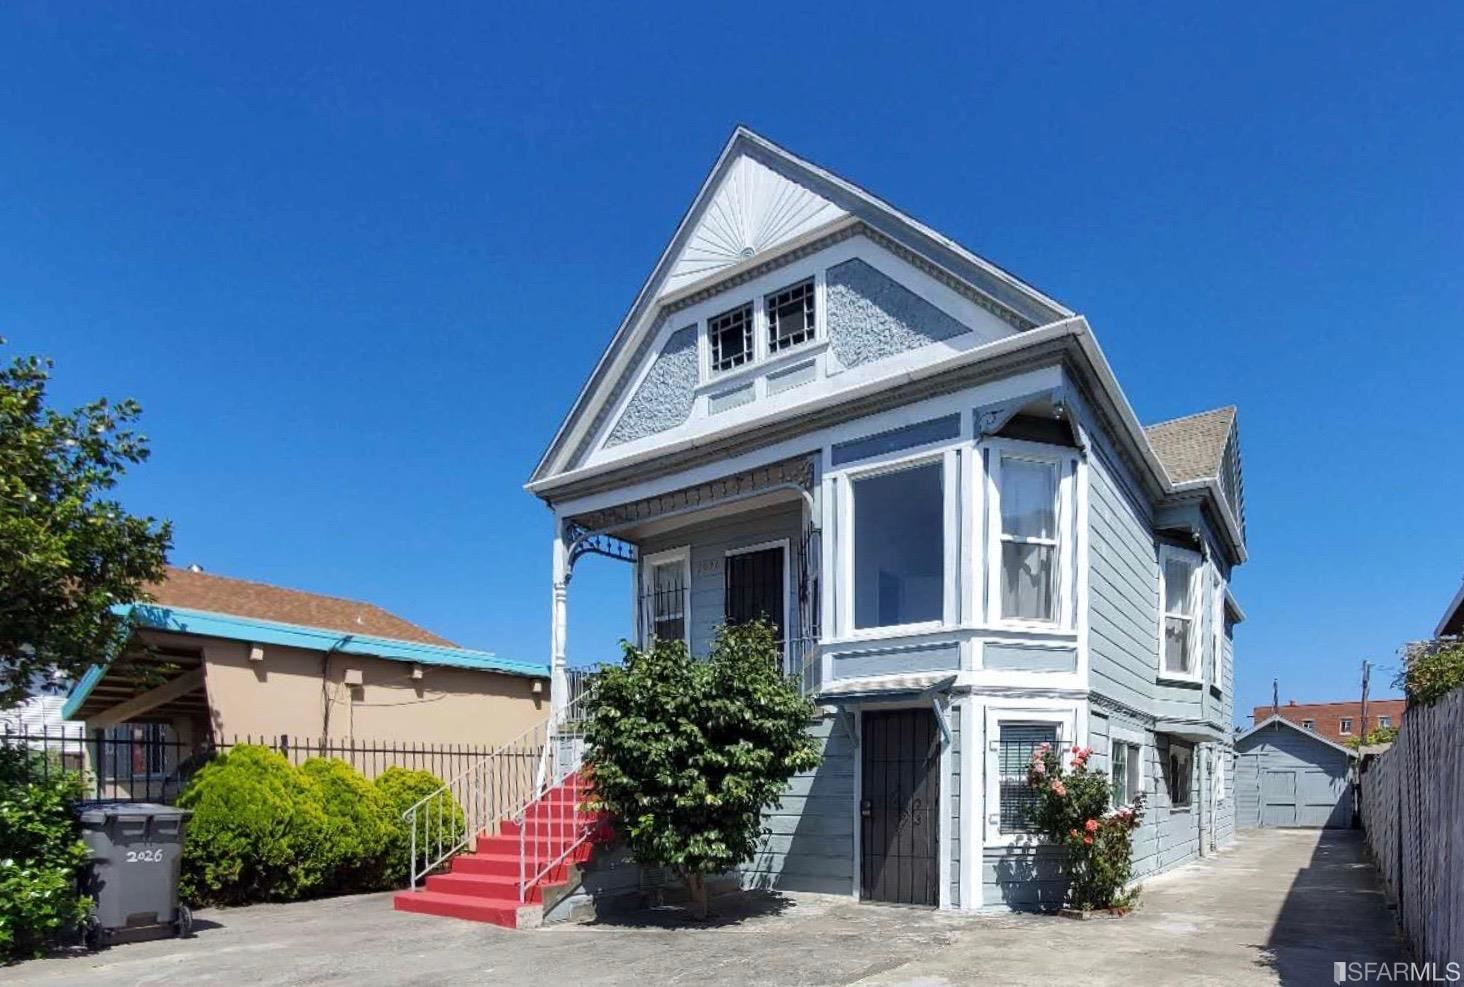 2026 Coolidge ave, Oakland, CA 94601 - #: 502797